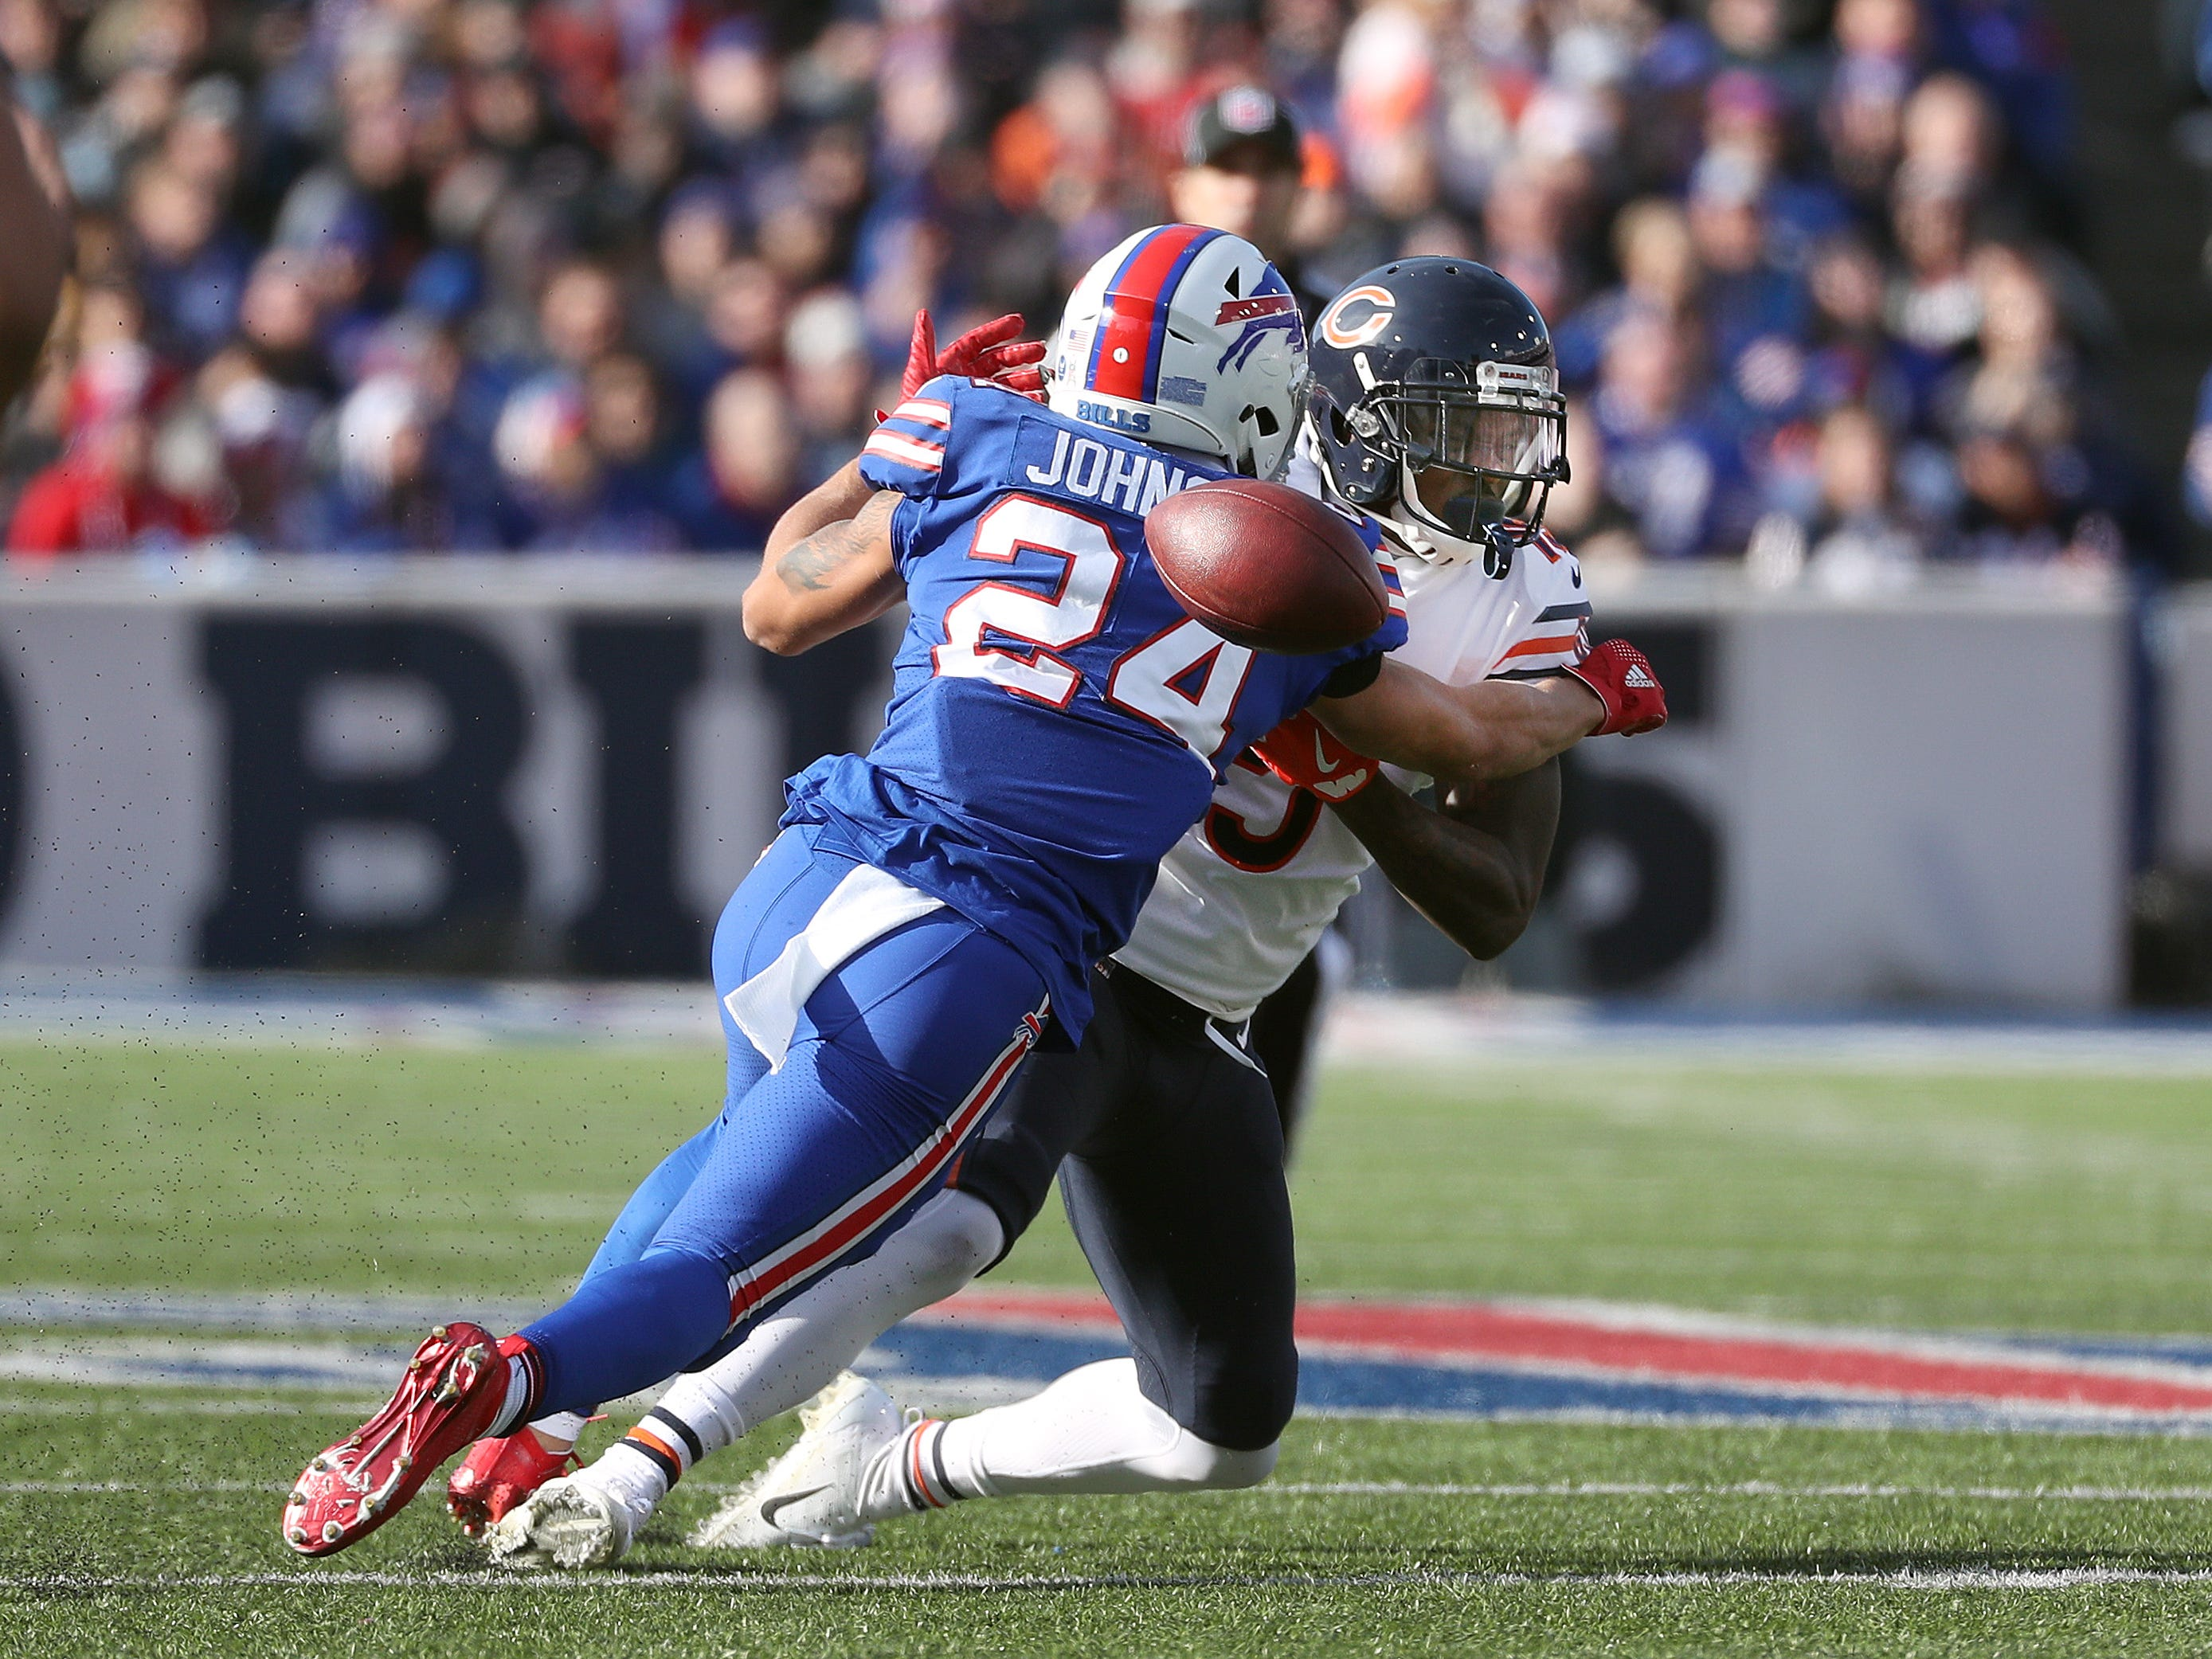 Buffalo Bills defensive back Taron  Johnson breaks up this pass intended for Bears receiver Joshua Bellamy.